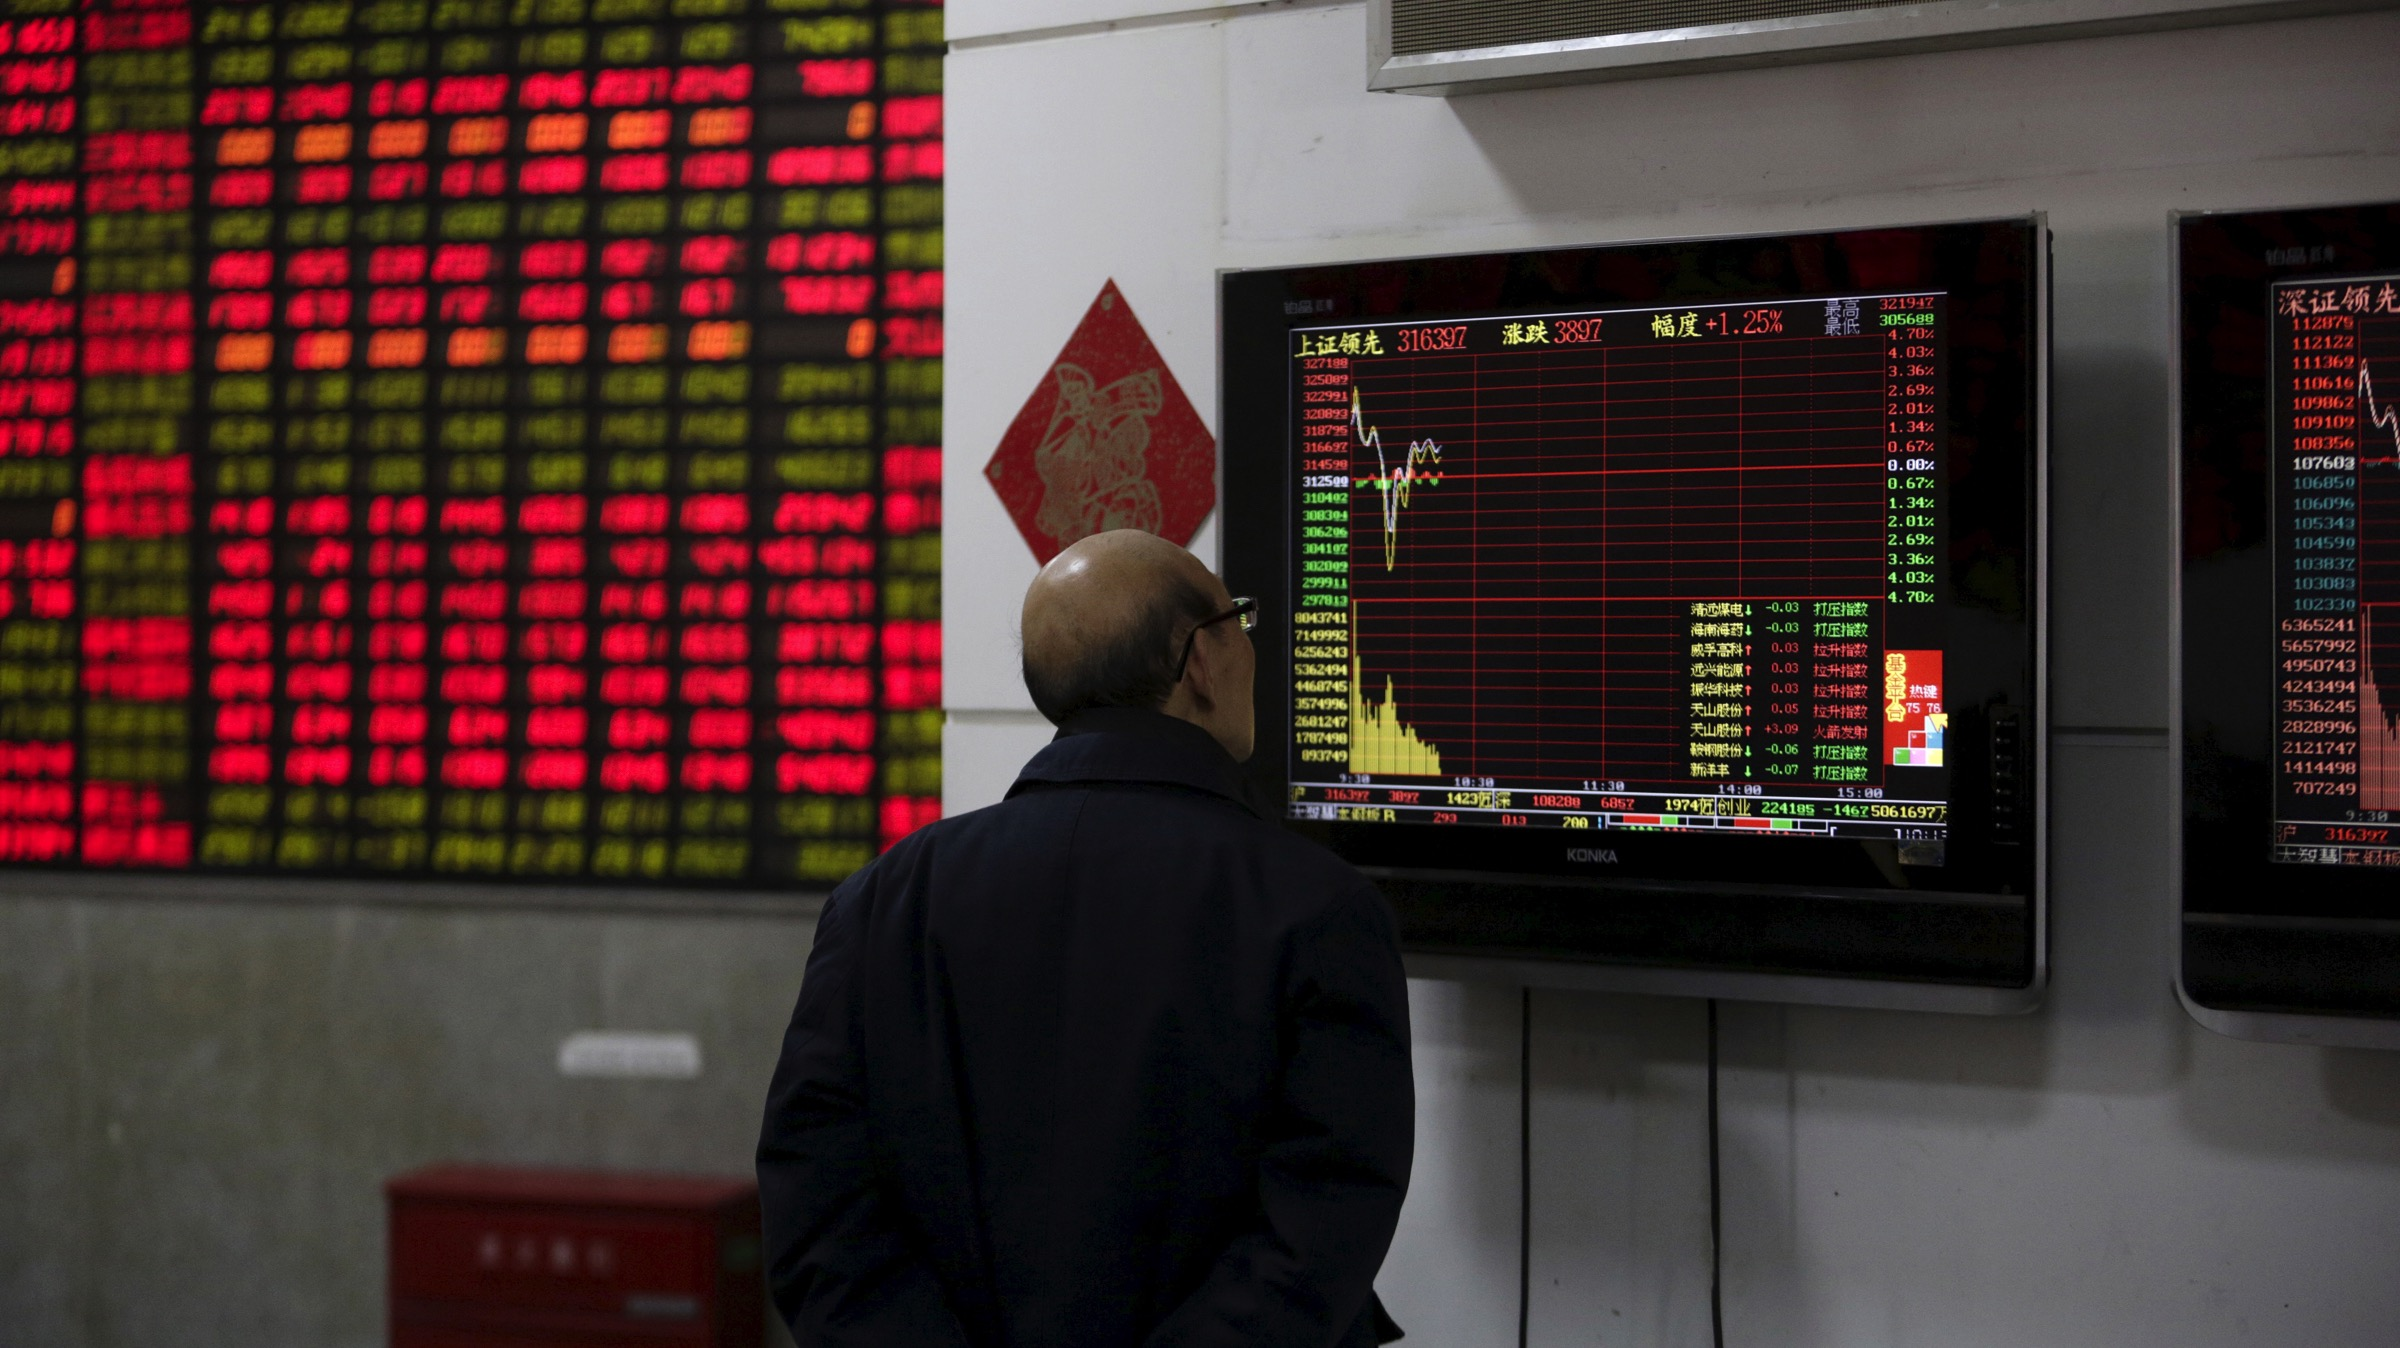 An investor looks at a screen showing stock information at a brokerage house in Shanghai, China, January 8, 2016. China's major stock indexes opened higher on Friday after Beijing ditched a circuit breaker mechanism that halted trading twice this week when share prices tumbled and had been blamed for exacerbating the market sell-offs.   - RTX21HTH